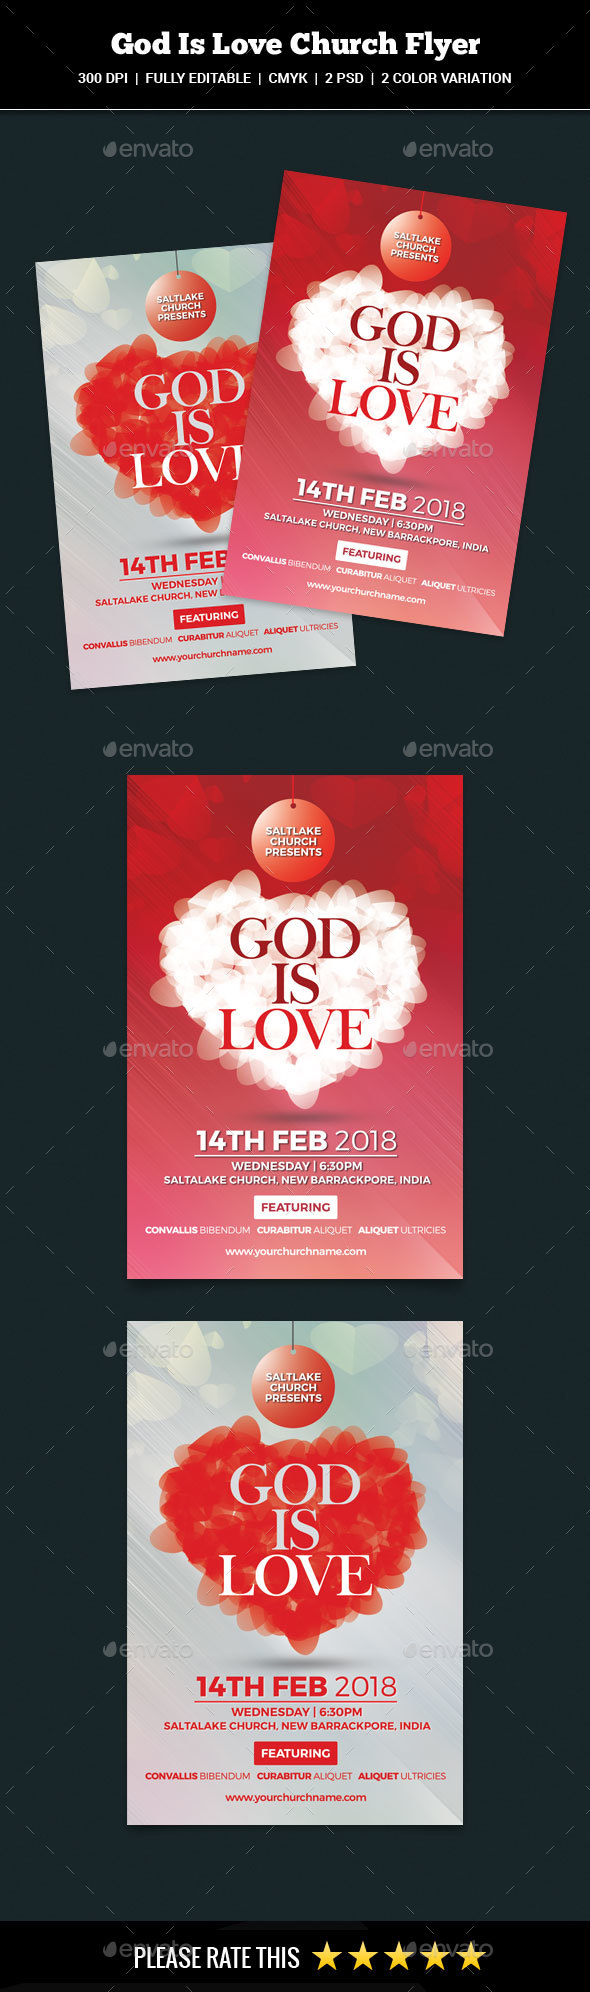 God Is Love Flyer - Church Flyers